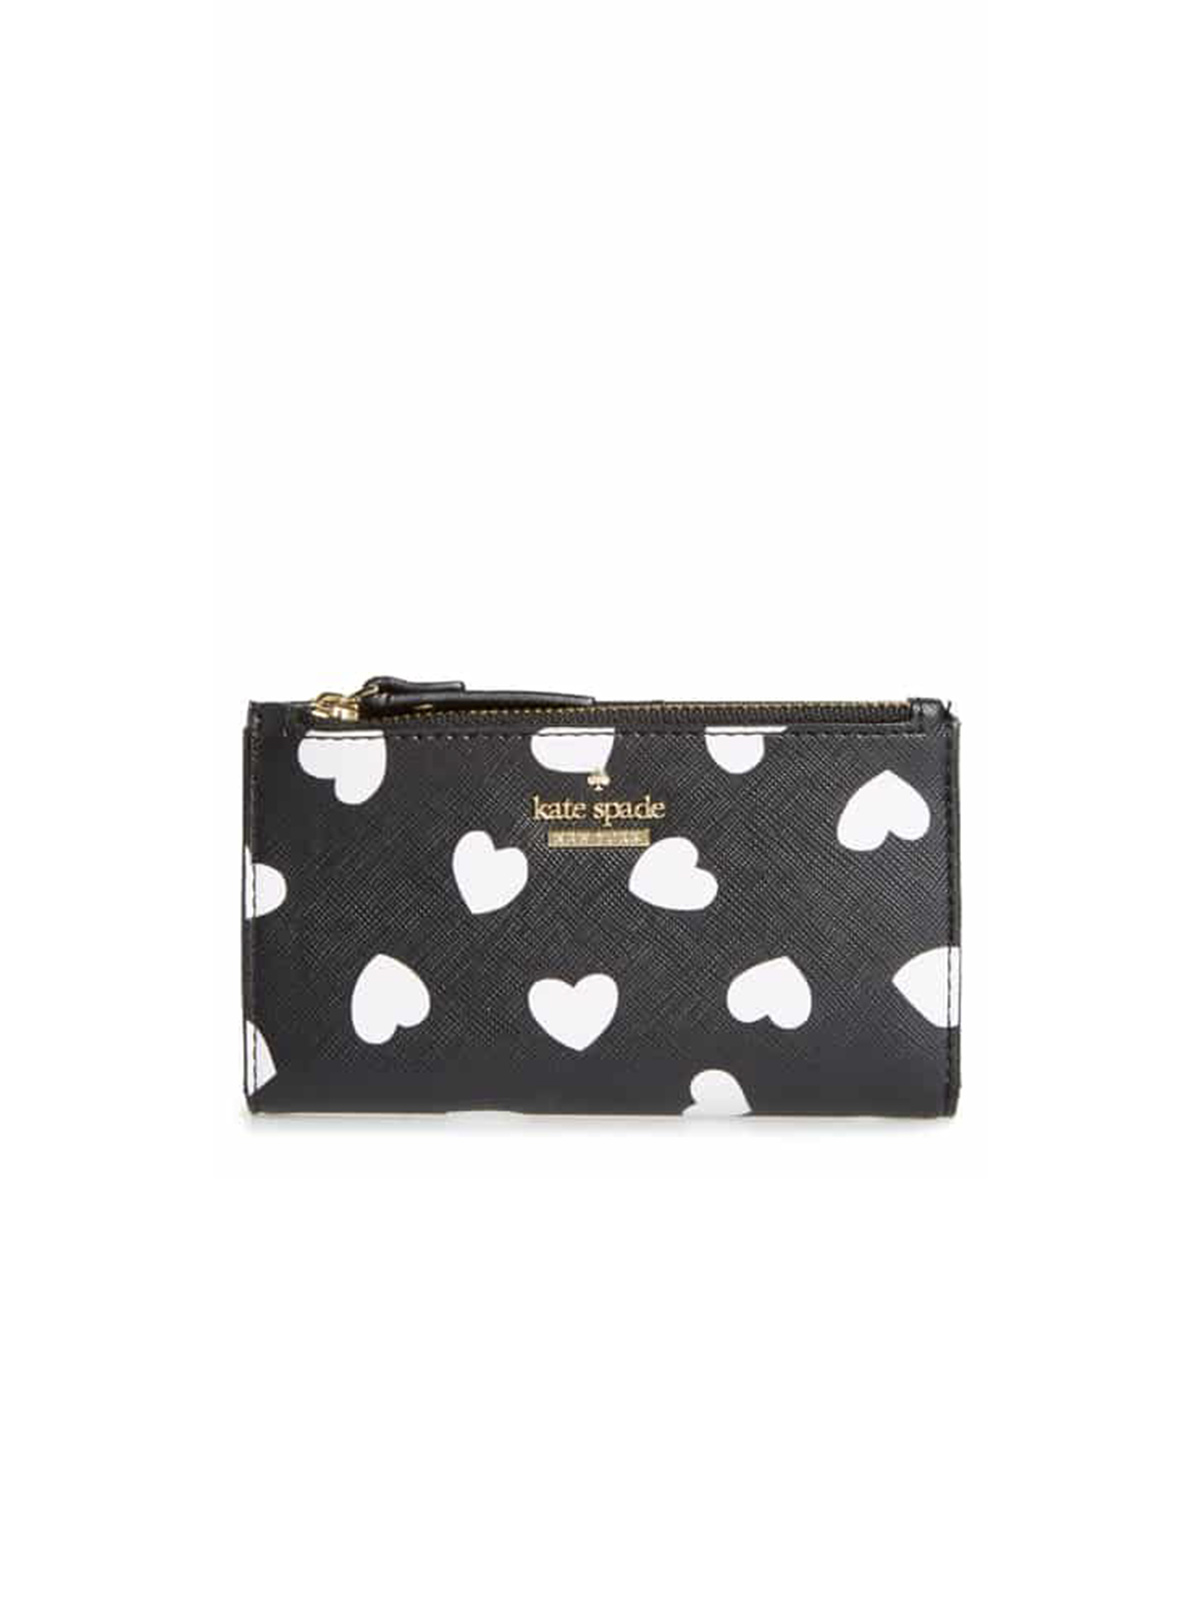 Valentine's Day Gift ideas to treat yourself, Kate Spade Wallet